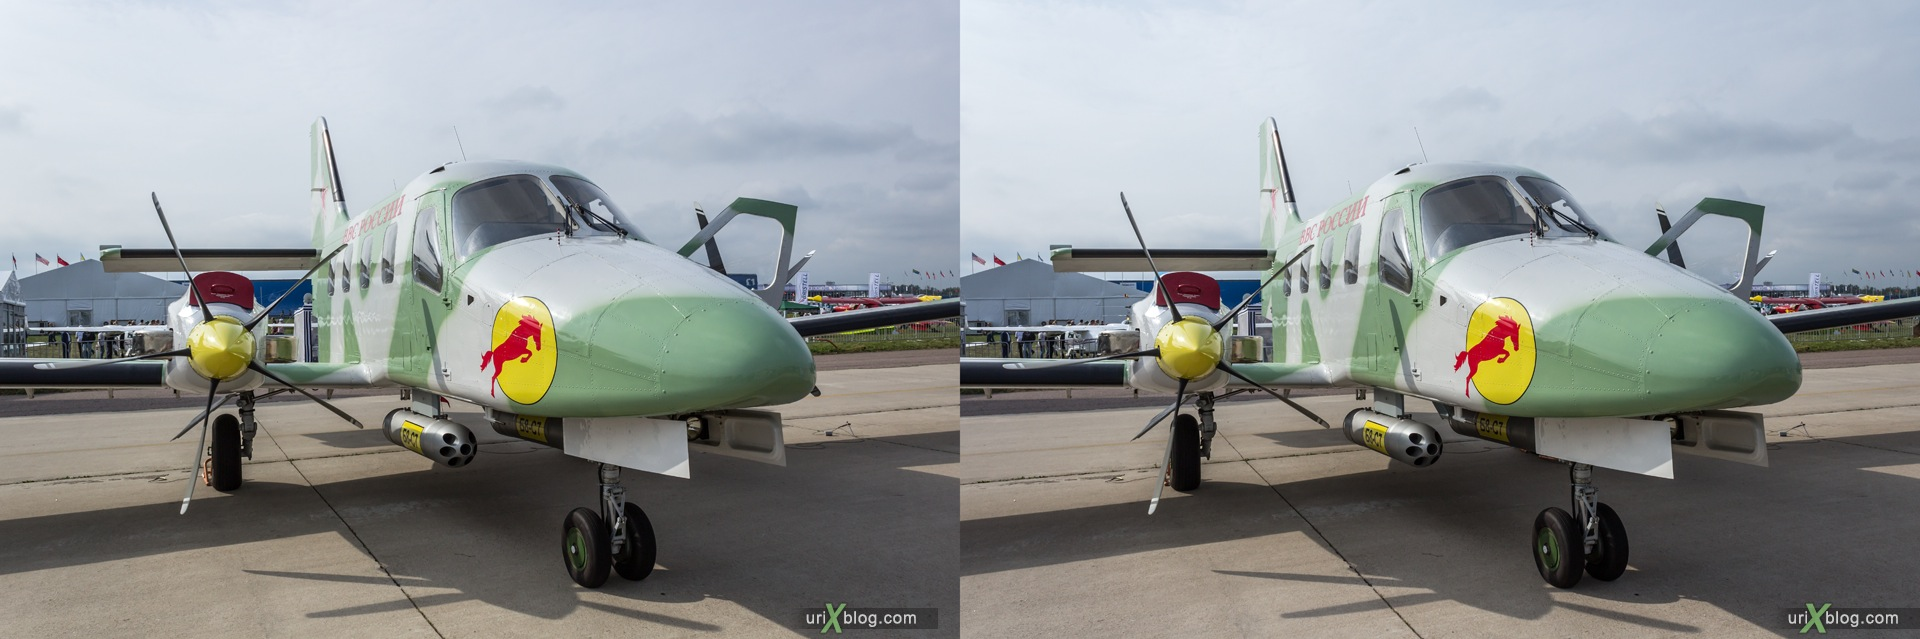 2013, Rysachok, MAKS, International Aviation and Space Salon, Russia, Ramenskoye airfield, airplane, 3D, stereo pair, cross-eyed, crossview, cross view stereo pair, stereoscopic